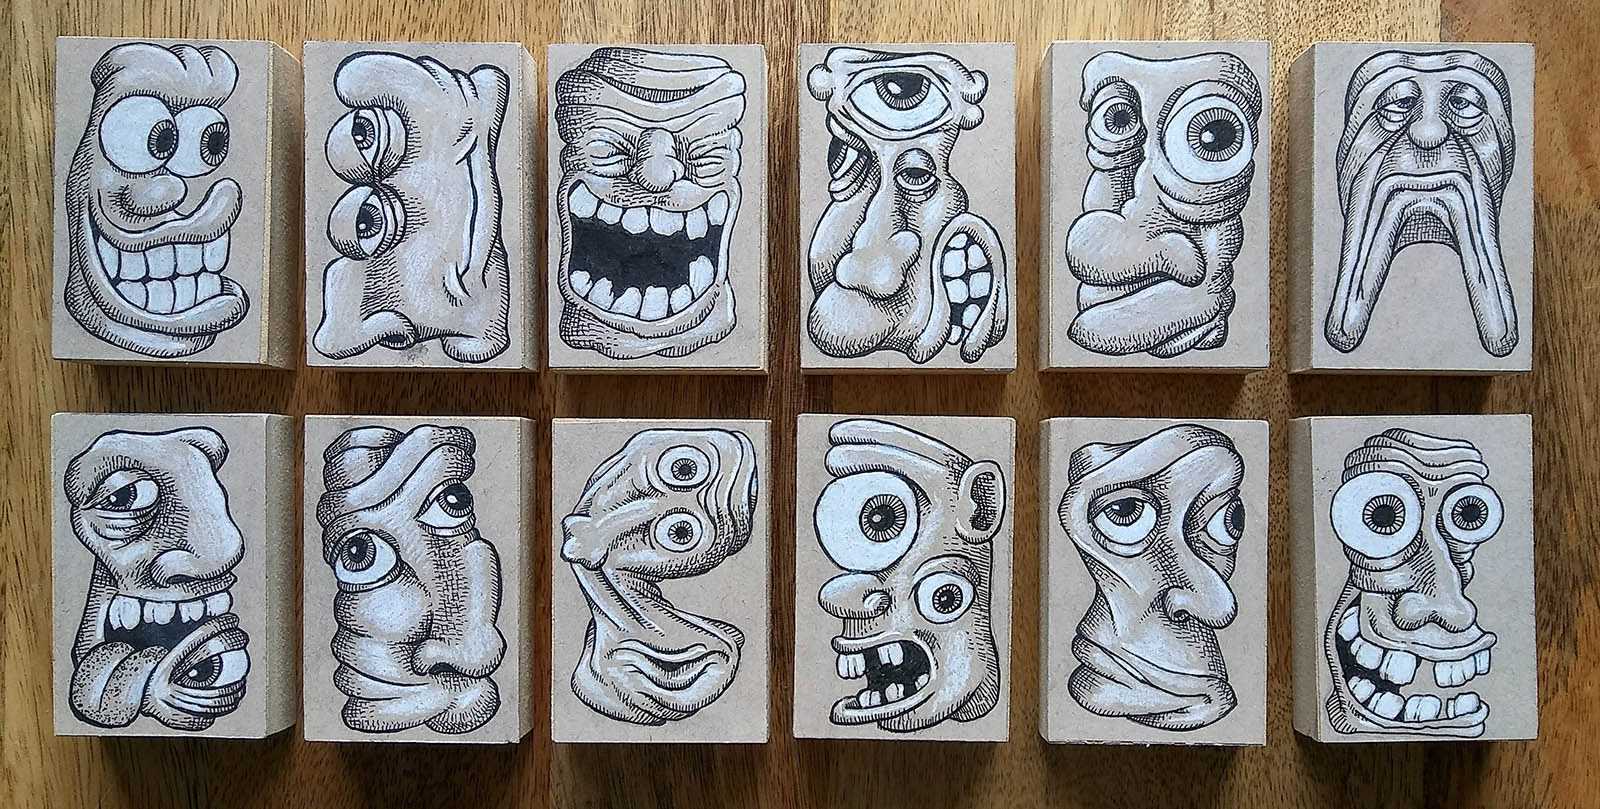 Ooky Faces Art Blocks by Chris Palm